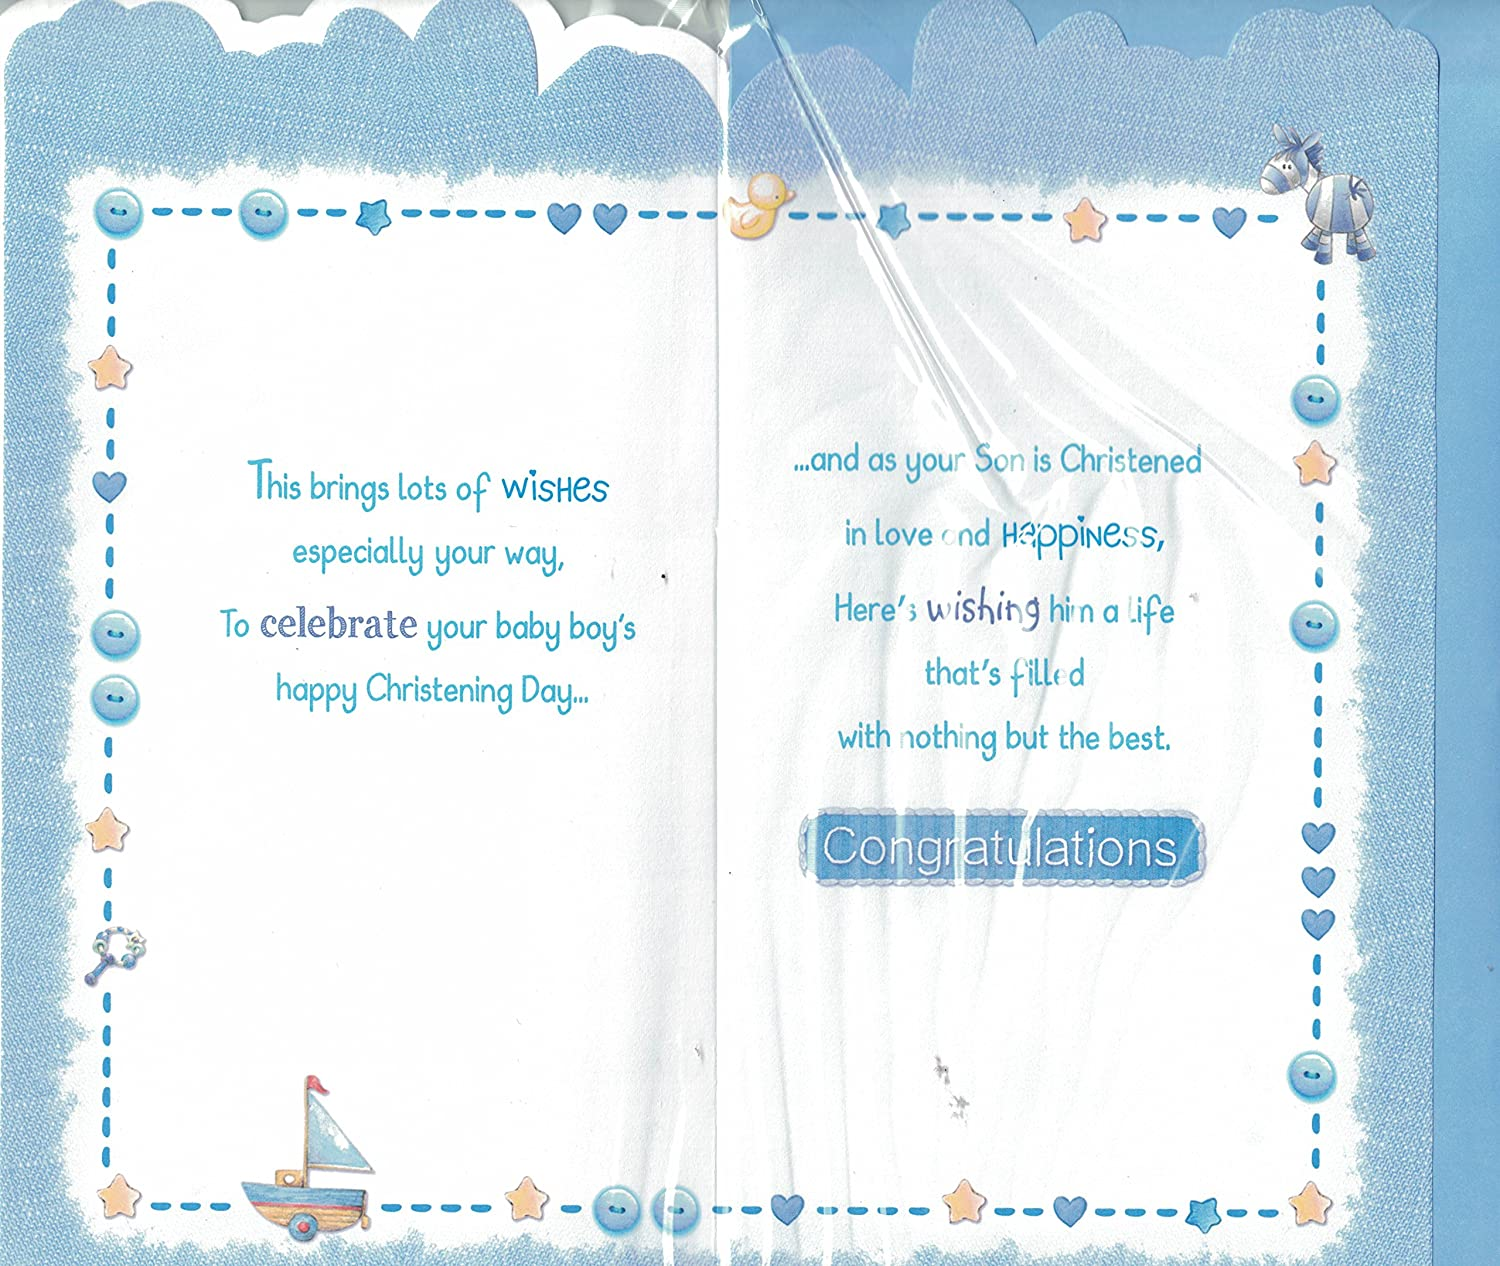 Baby boy christening card sending warmest wishes on your sons baby boy christening card sending warmest wishes on your sons christening day amazon toys games kristyandbryce Choice Image